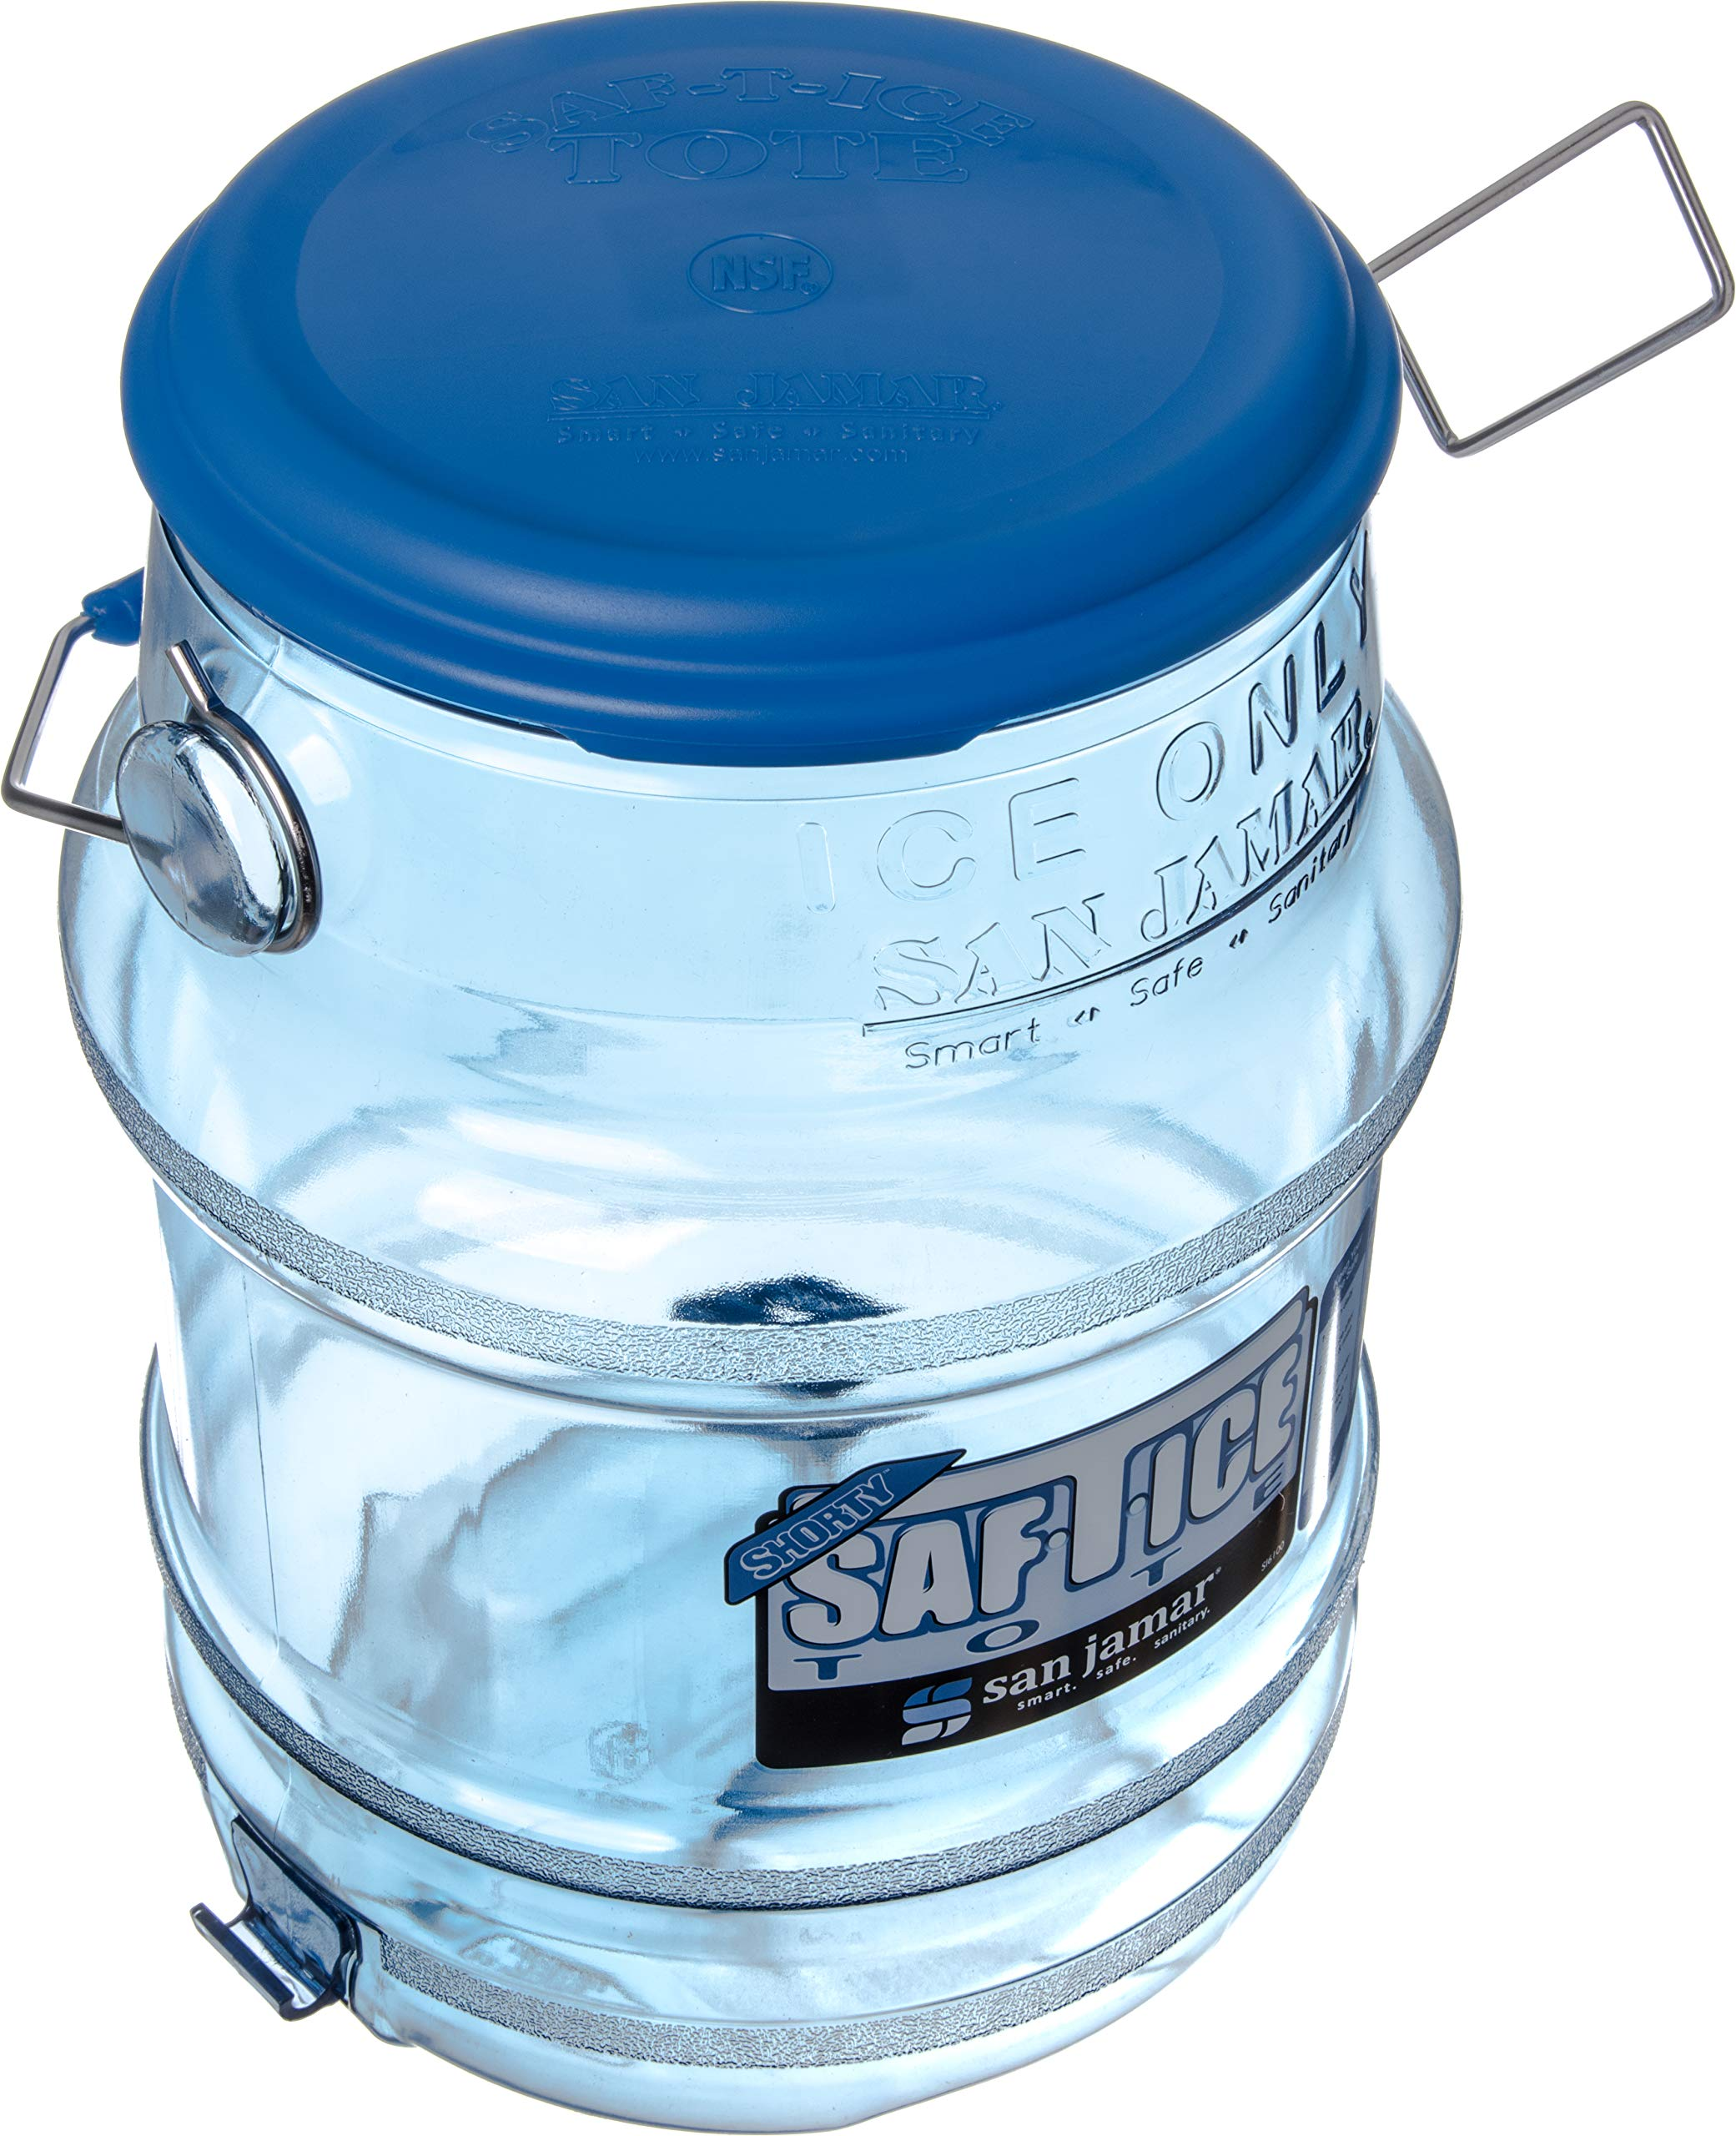 San Jamar Saf-T-Ice Commercial Ice Tote Snap-Tight Lid by San Jamar (Image #5)